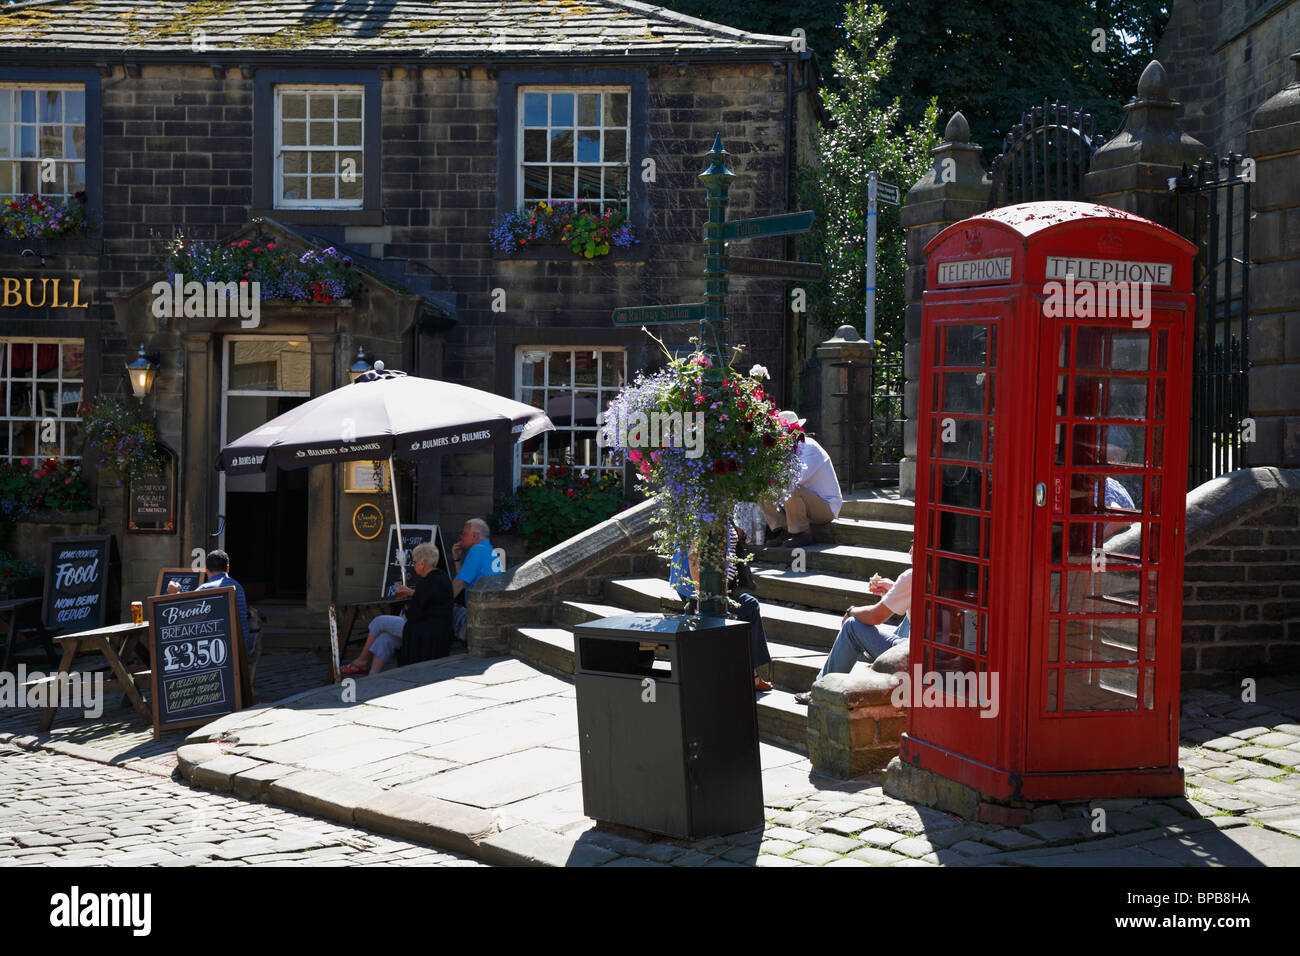 Visitors sat on church steps by the Black Bull pub on Main Street, Haworth, West Yorkshire, England, UK. - Stock Image